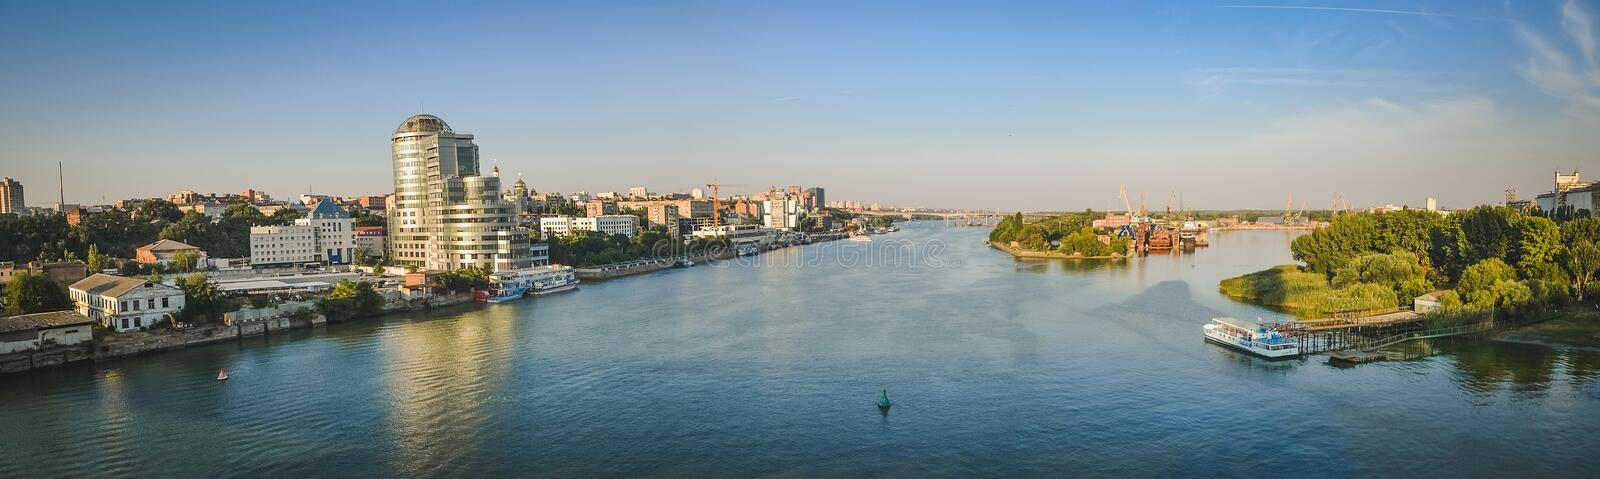 Le panorama la rivière Don, Rostov-On-Don images libres de droits